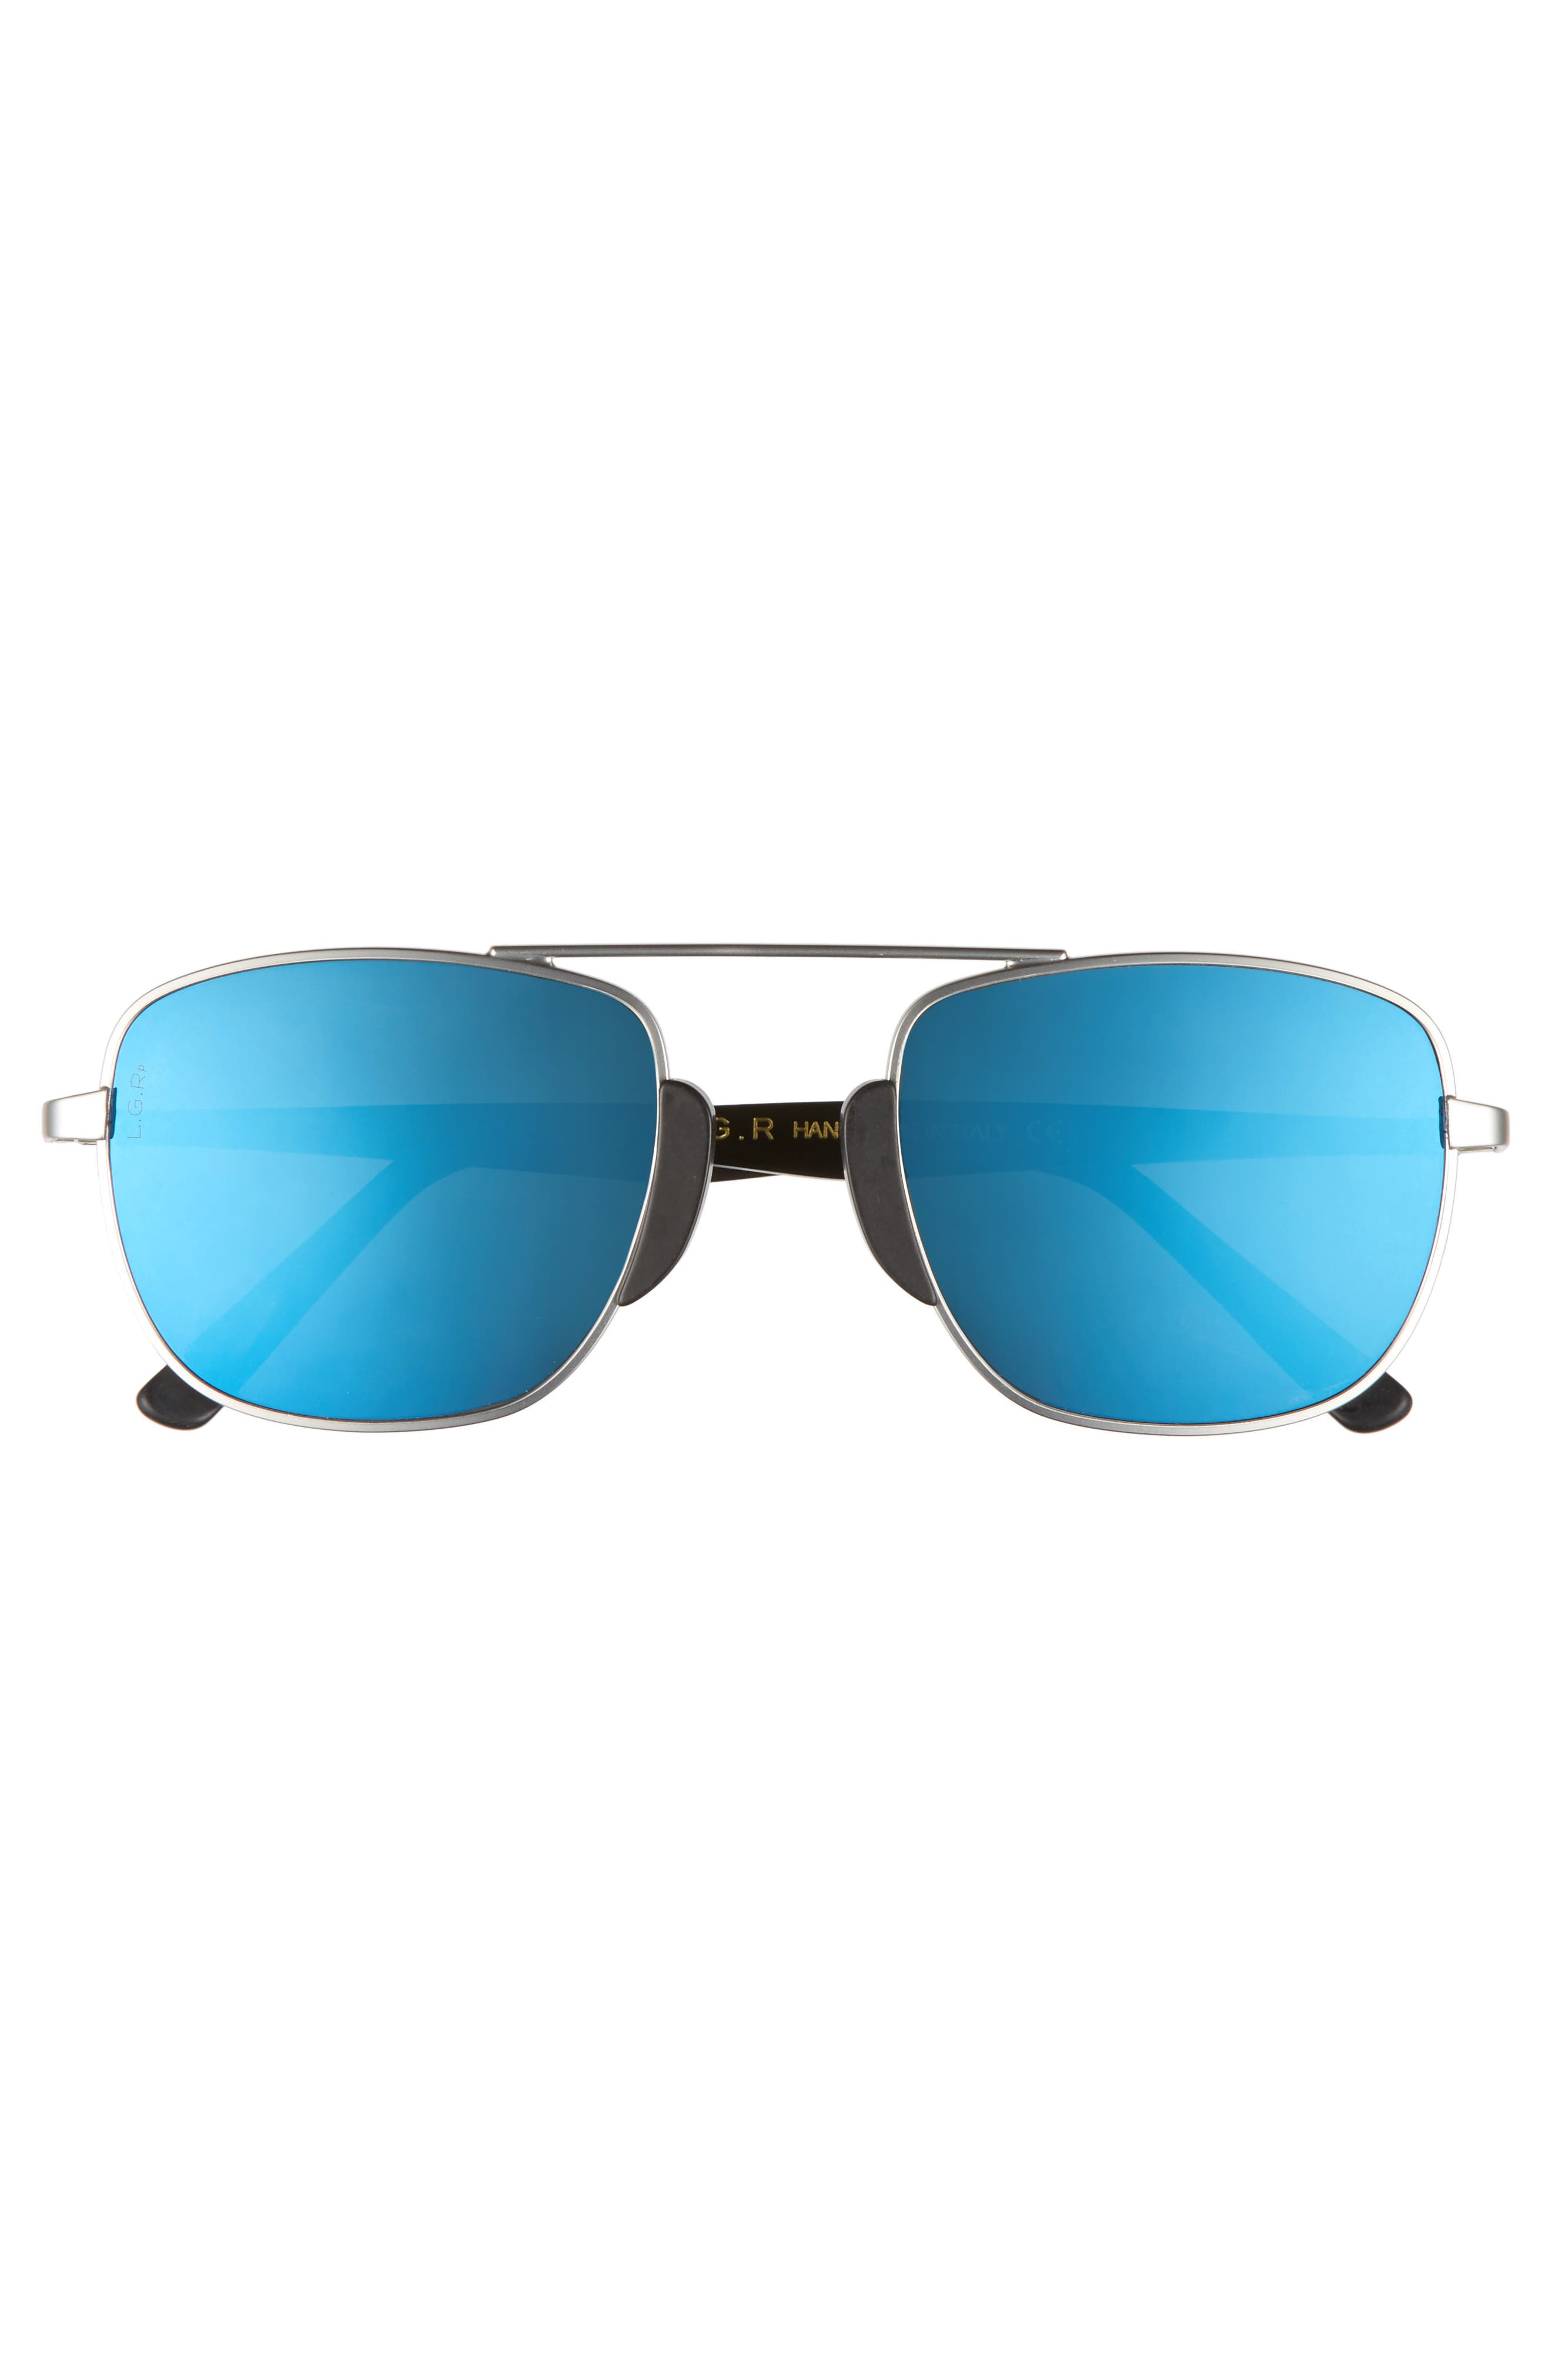 Negus 53mm Polarized Sunglasses,                             Alternate thumbnail 2, color,